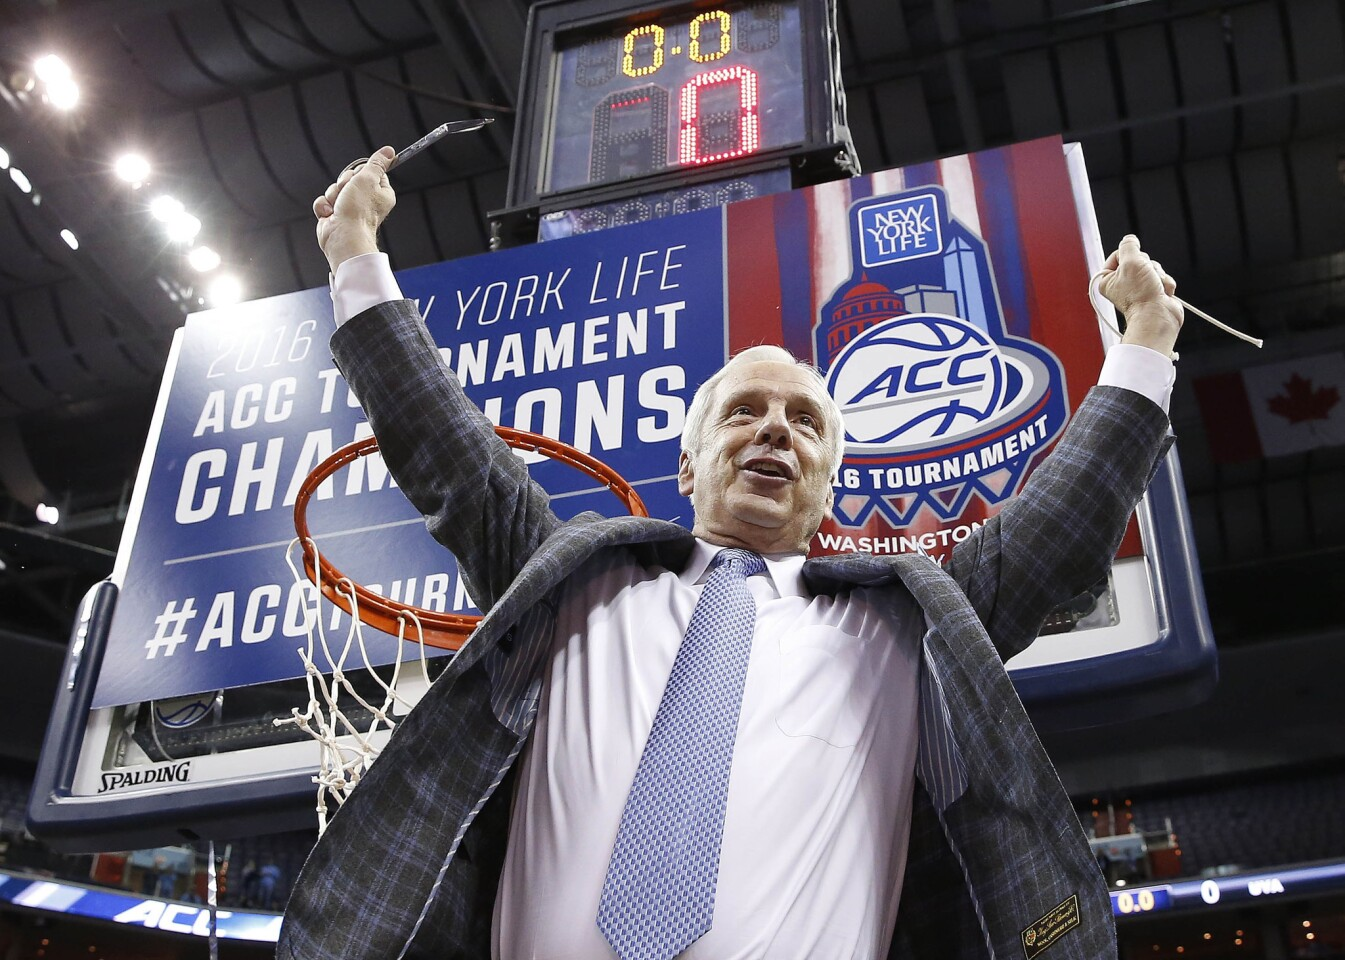 North Carolina Coach Roy Williams holds part of the net after his Tar Heels defeated Virginia in the ACC championship game on March 12.